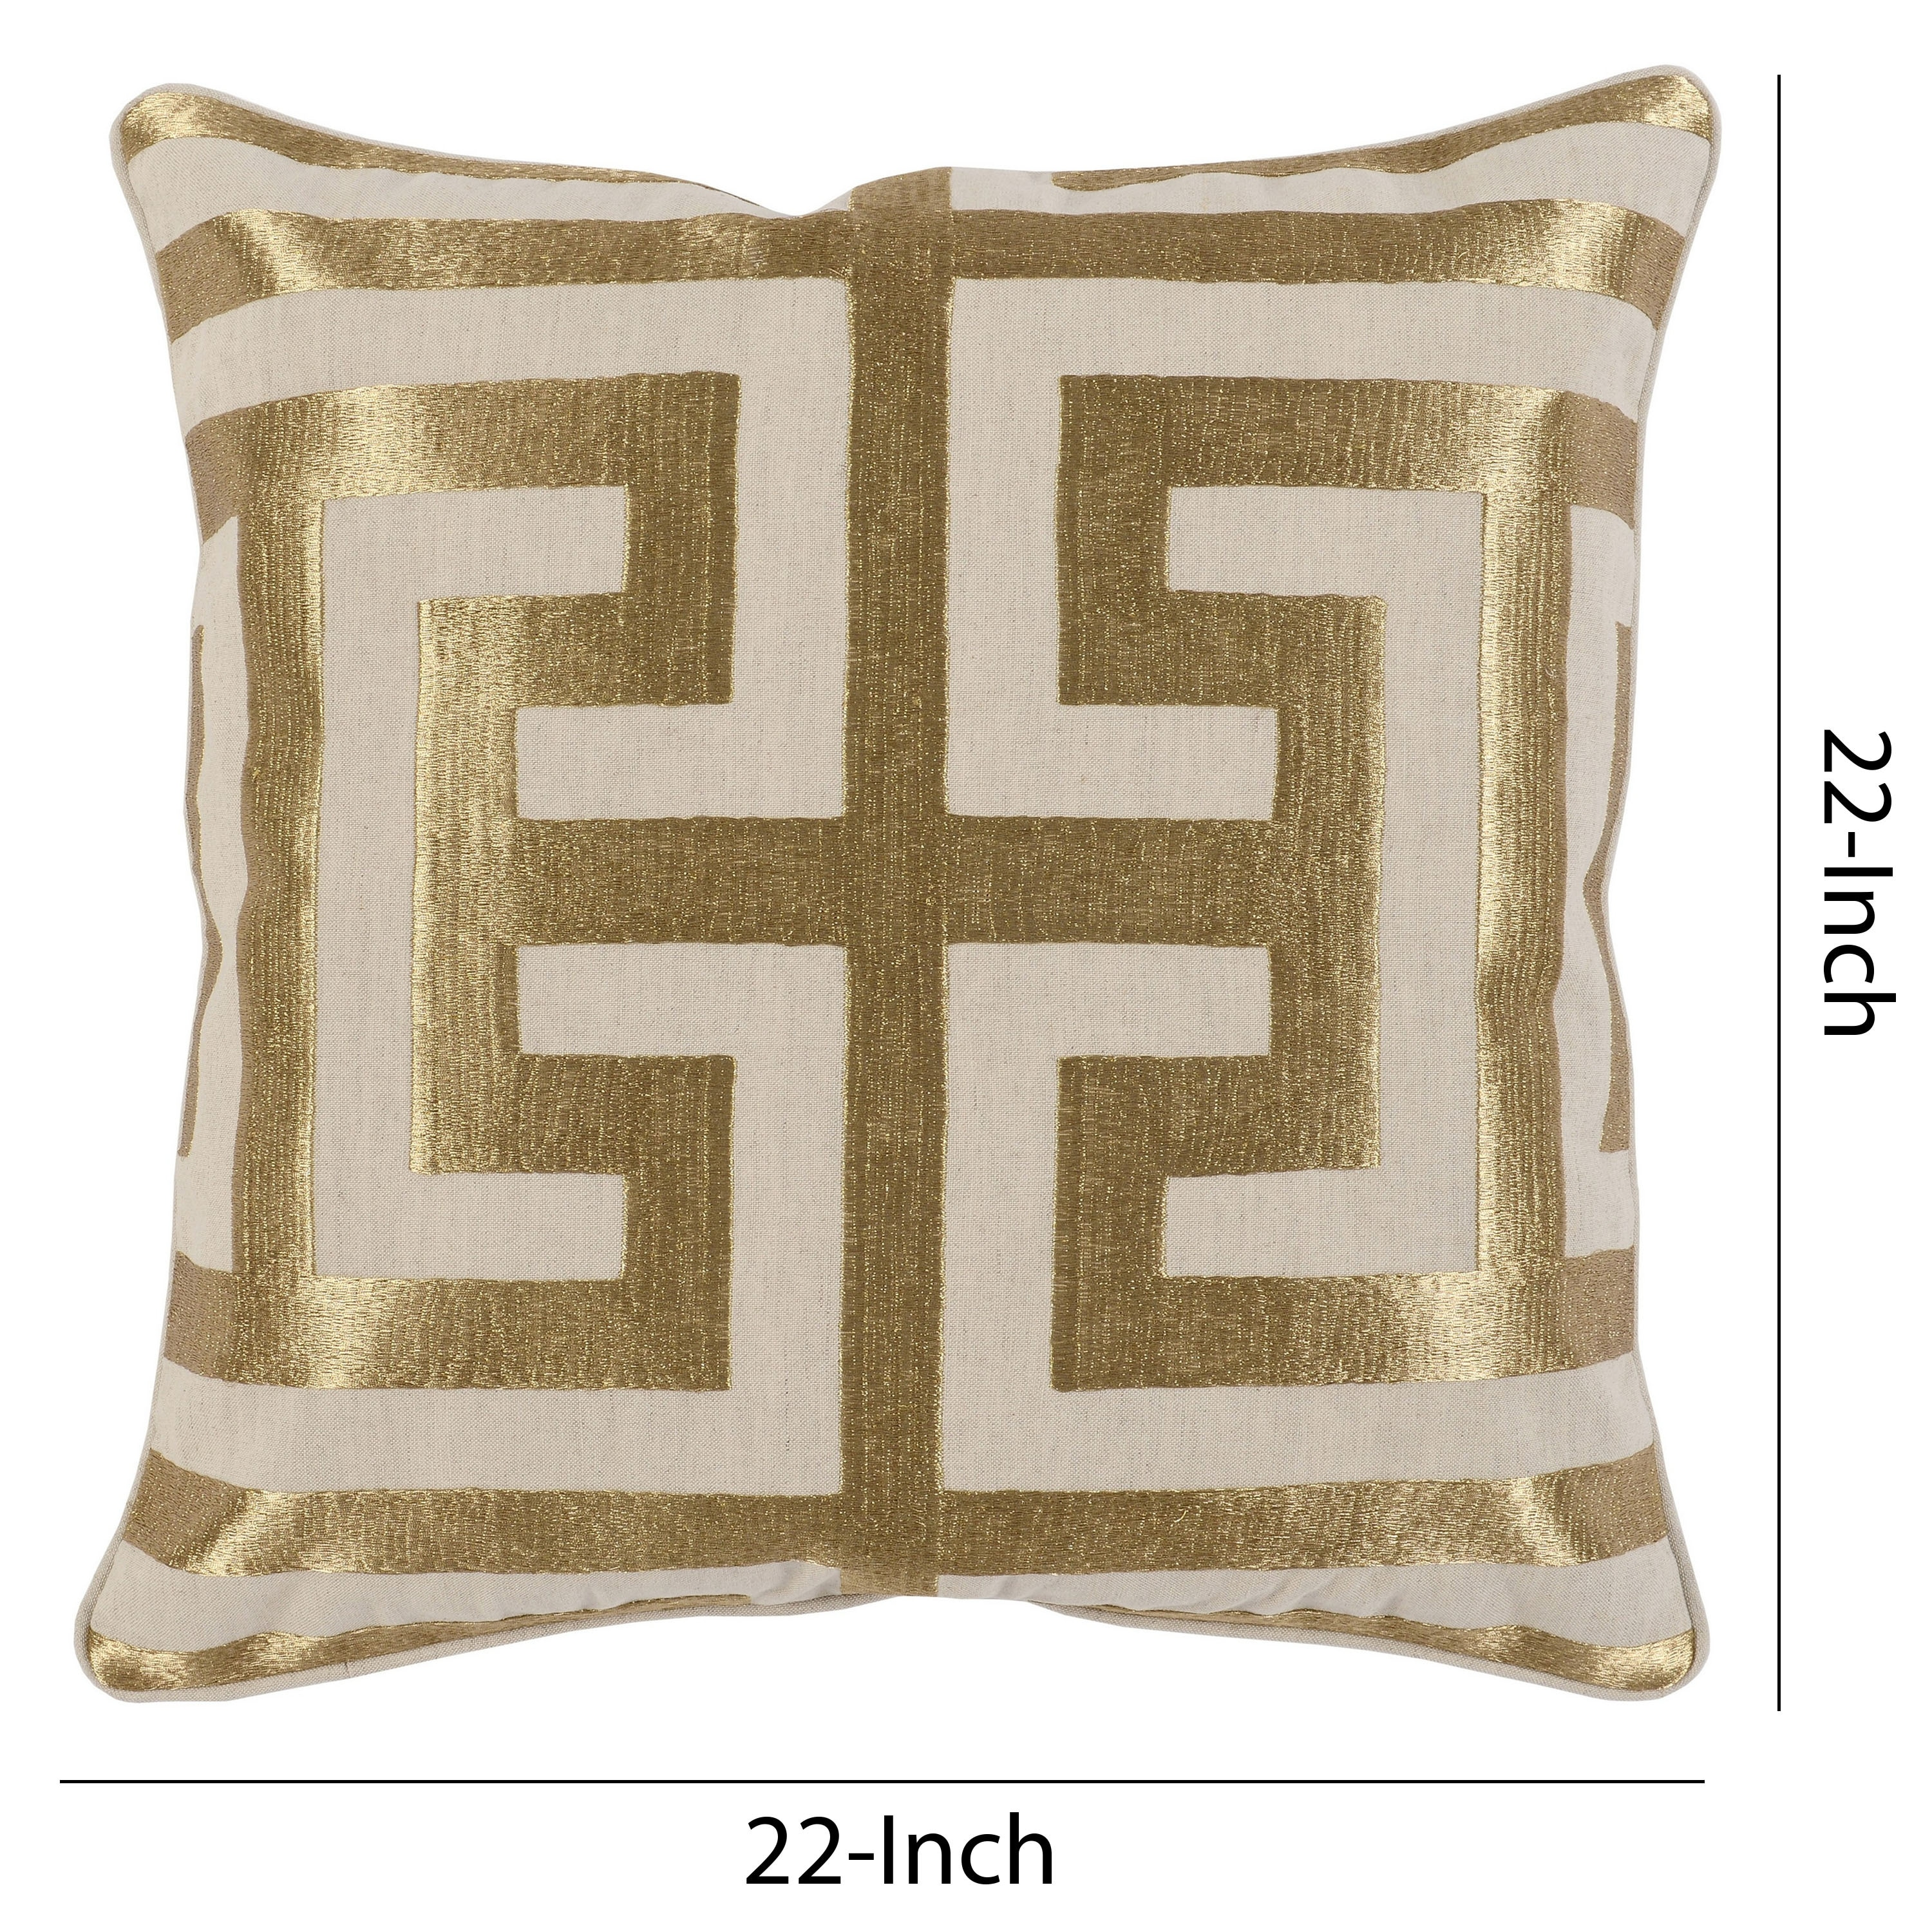 Square Fabric Throw Pillow With Metallic Embroidered Details Cream And Gold Cream And Gold Overstock 31836627